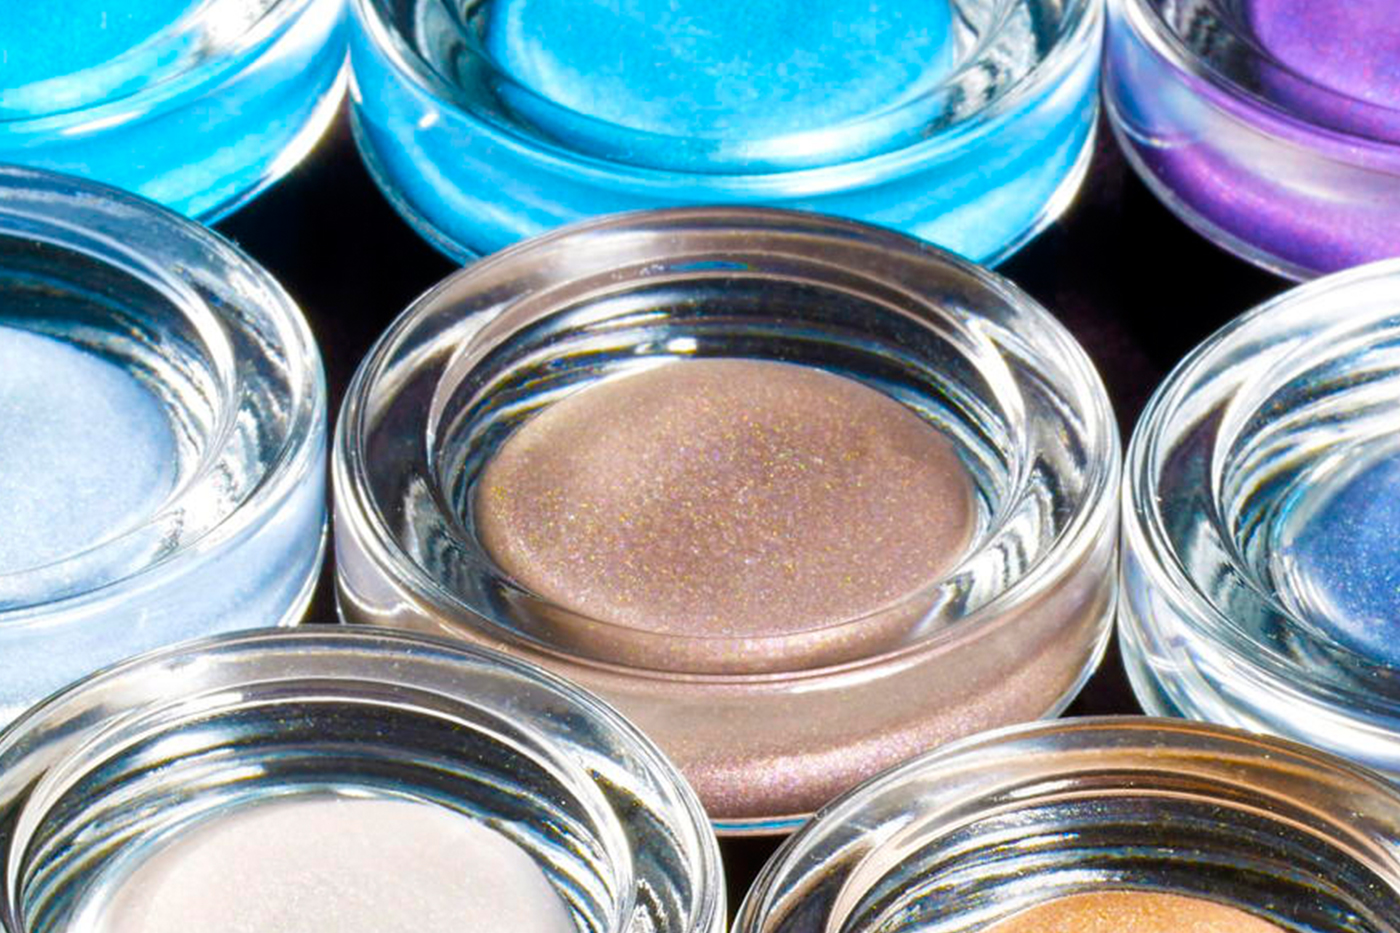 MS Beautilab expands to global markets